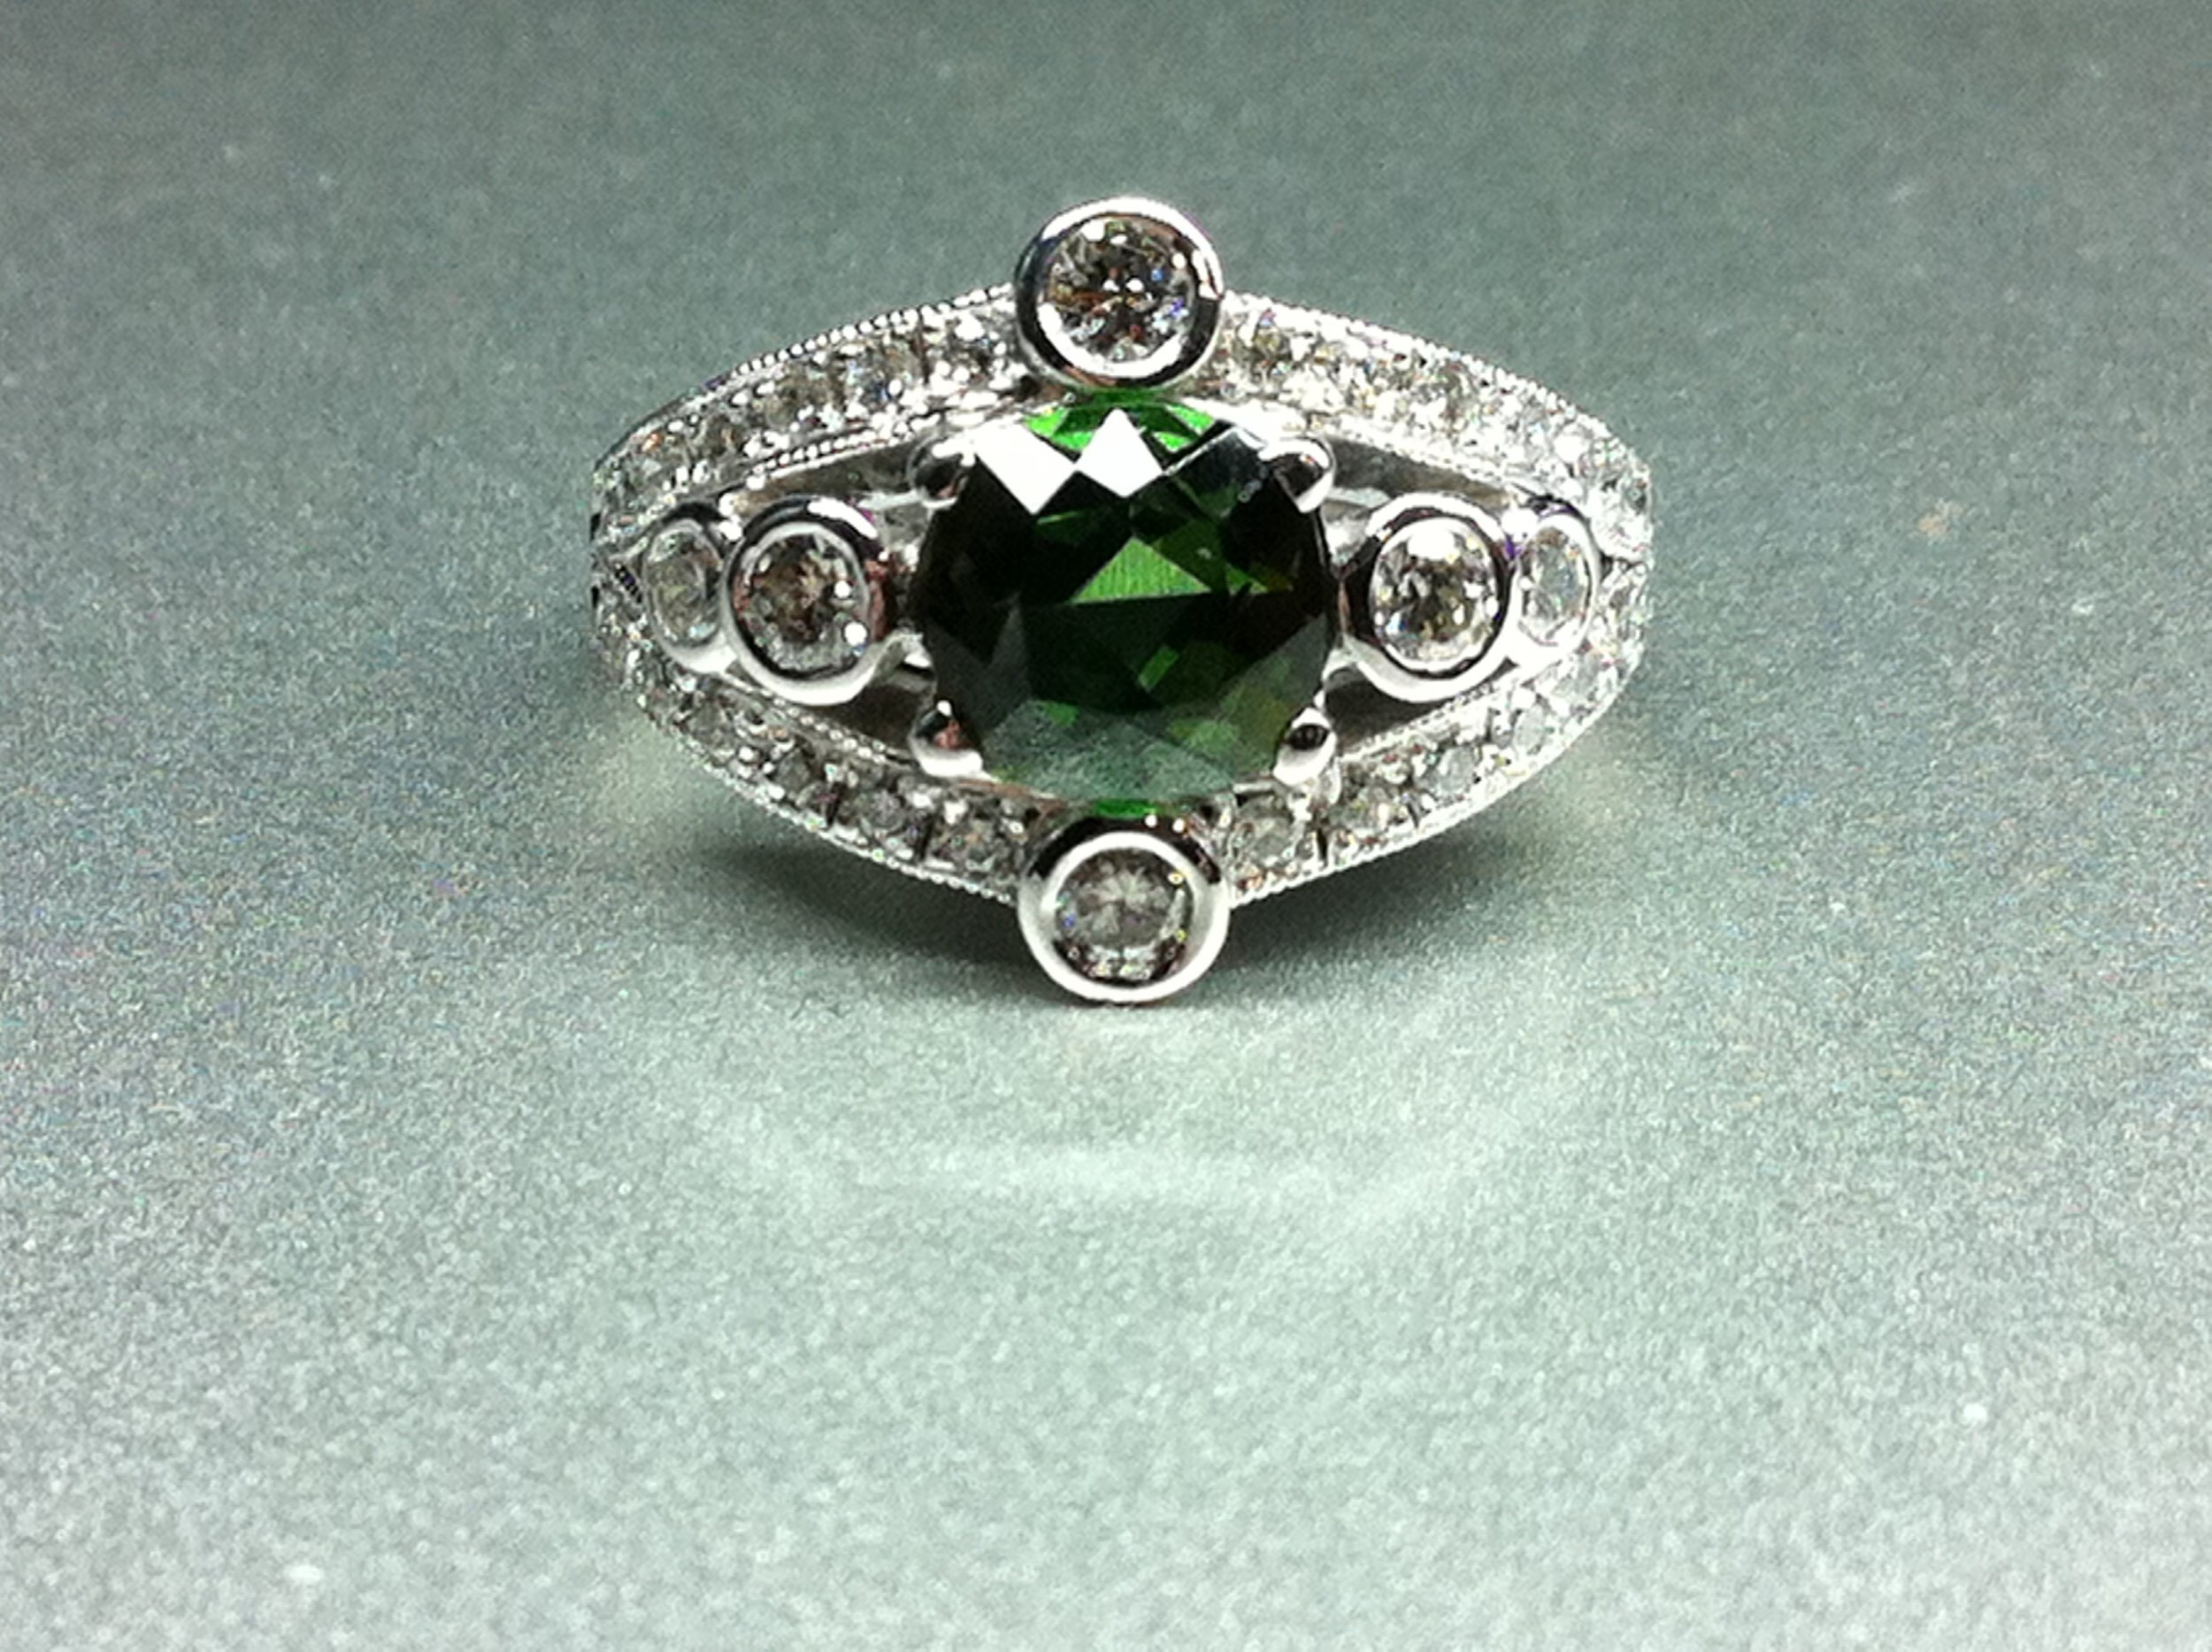 Copy of Green tourmaline and diamond wide band ring. Made in Chichester, England.